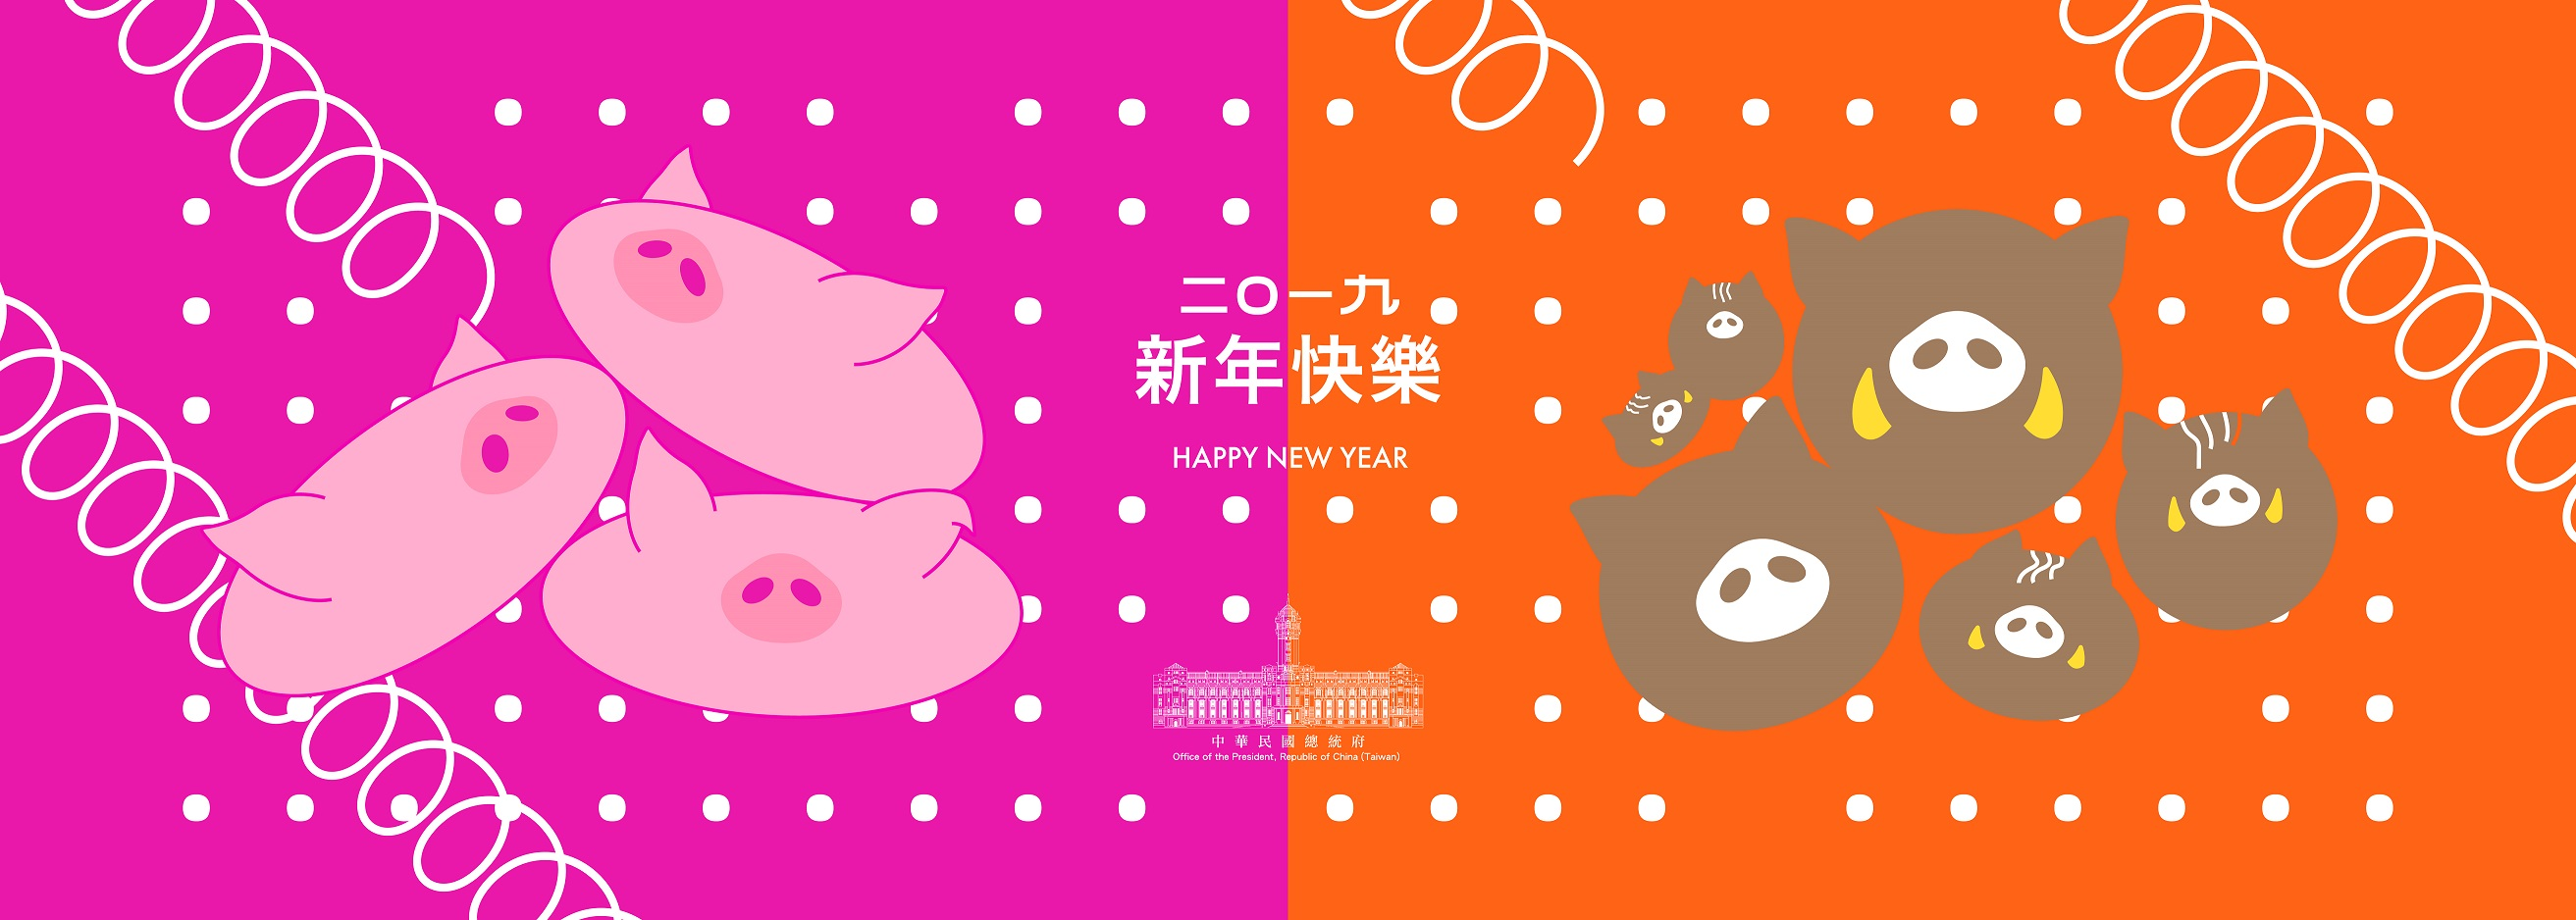 President Tsai and Vice President Chen's 2019 New Year's Ecards